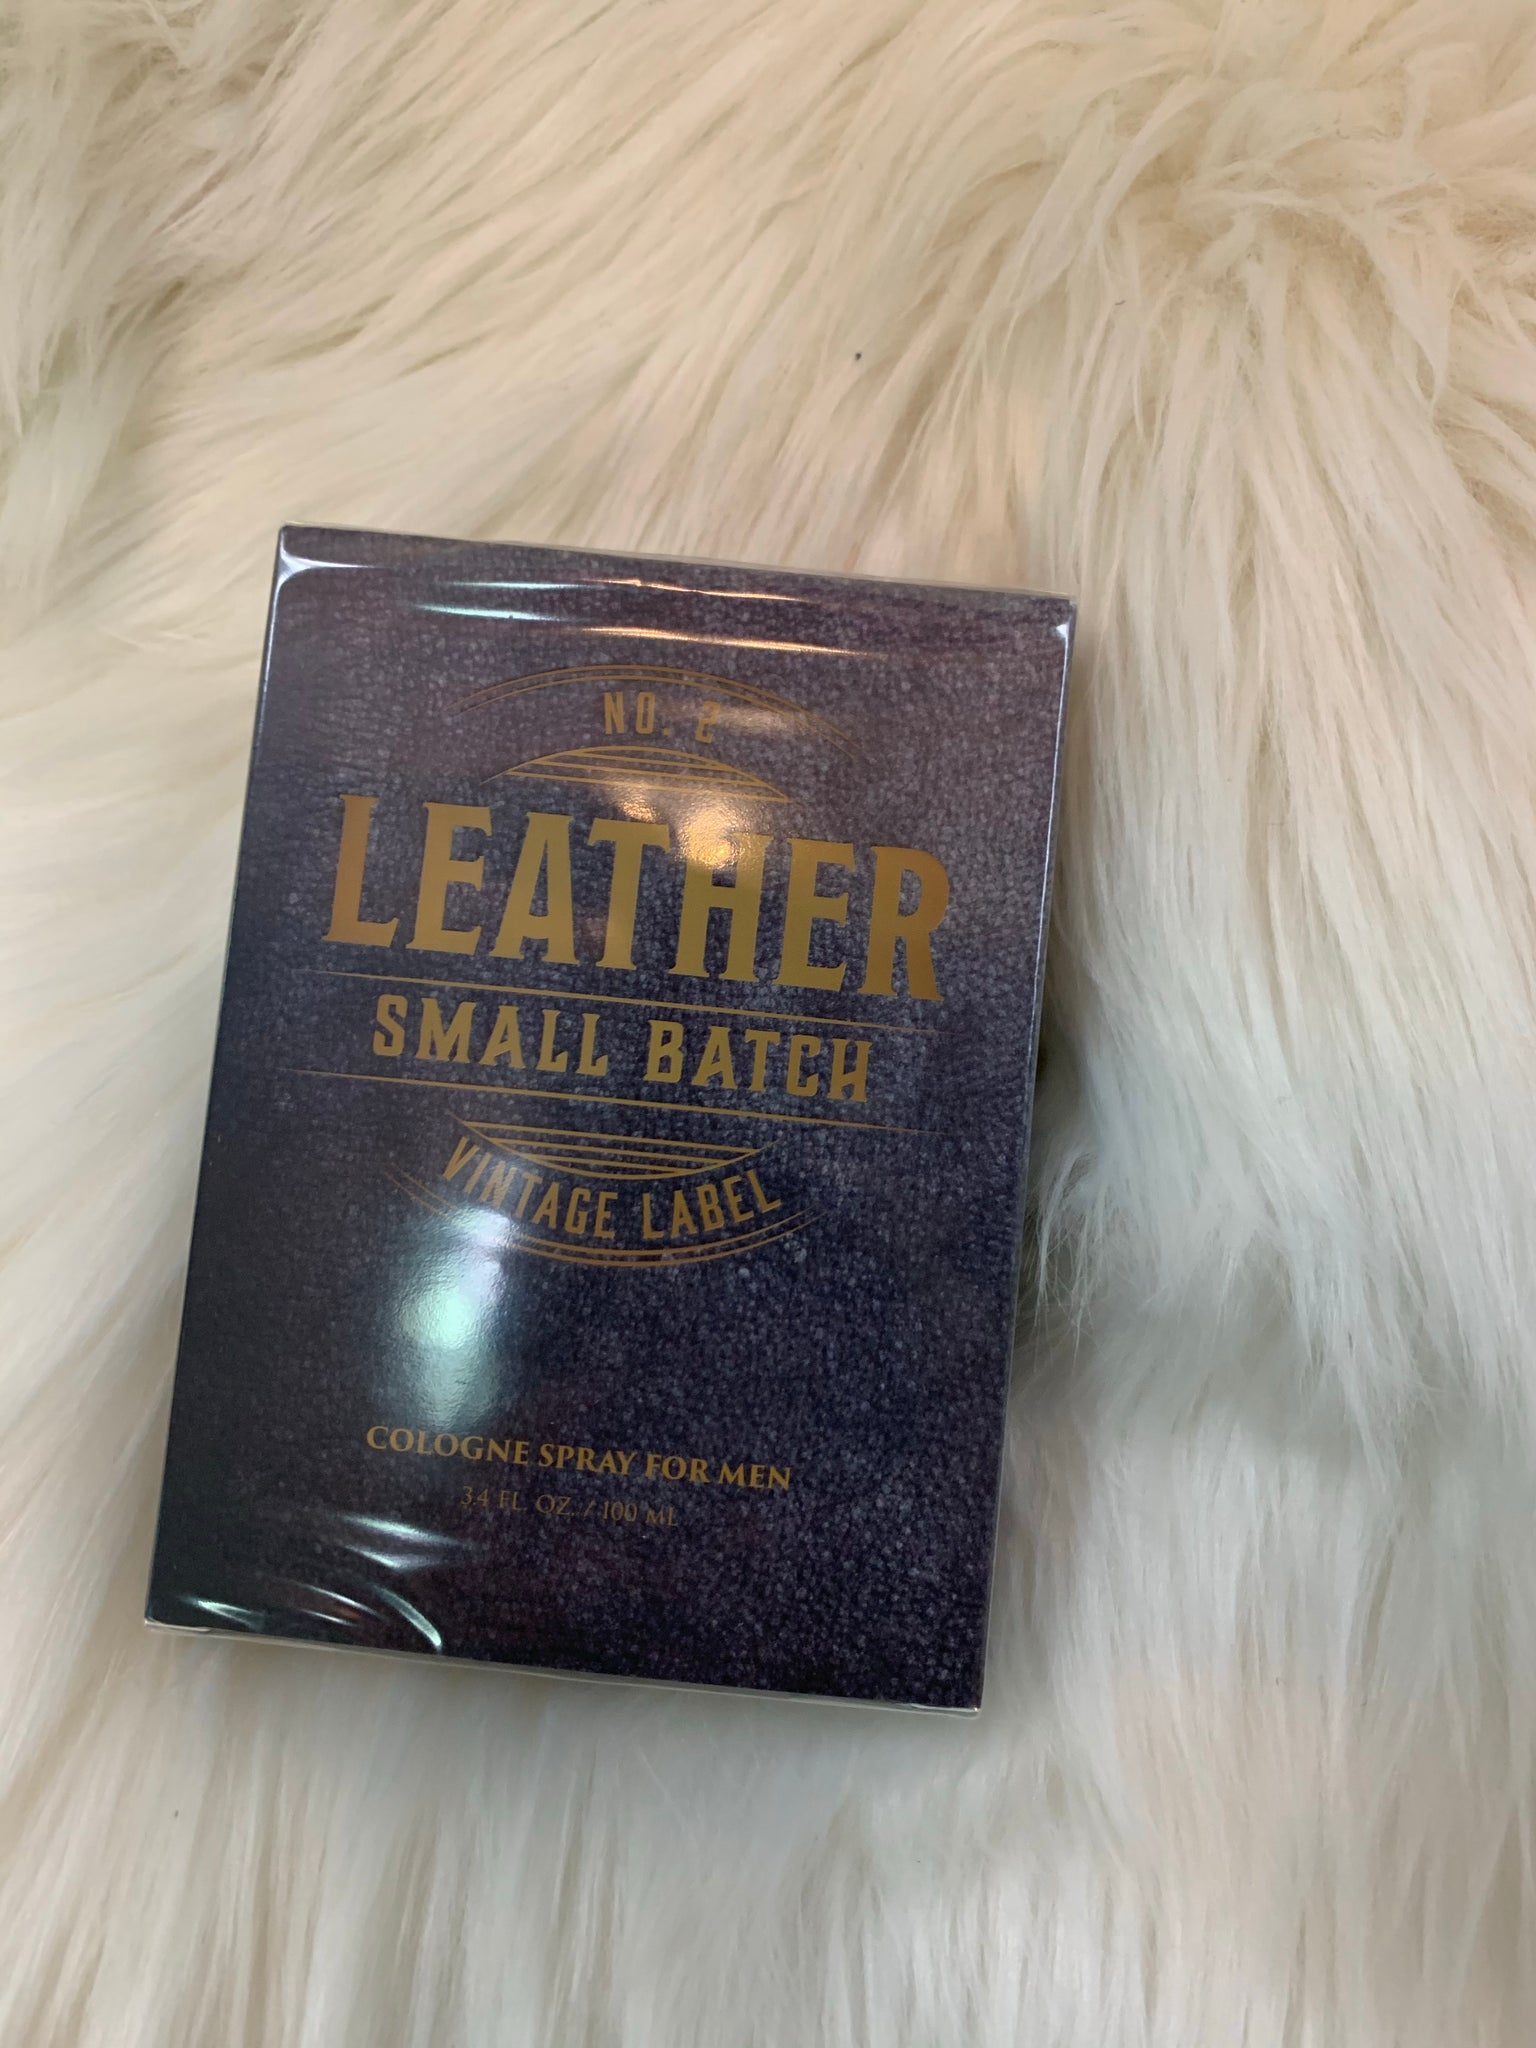 NO.2 Leather Small Batch